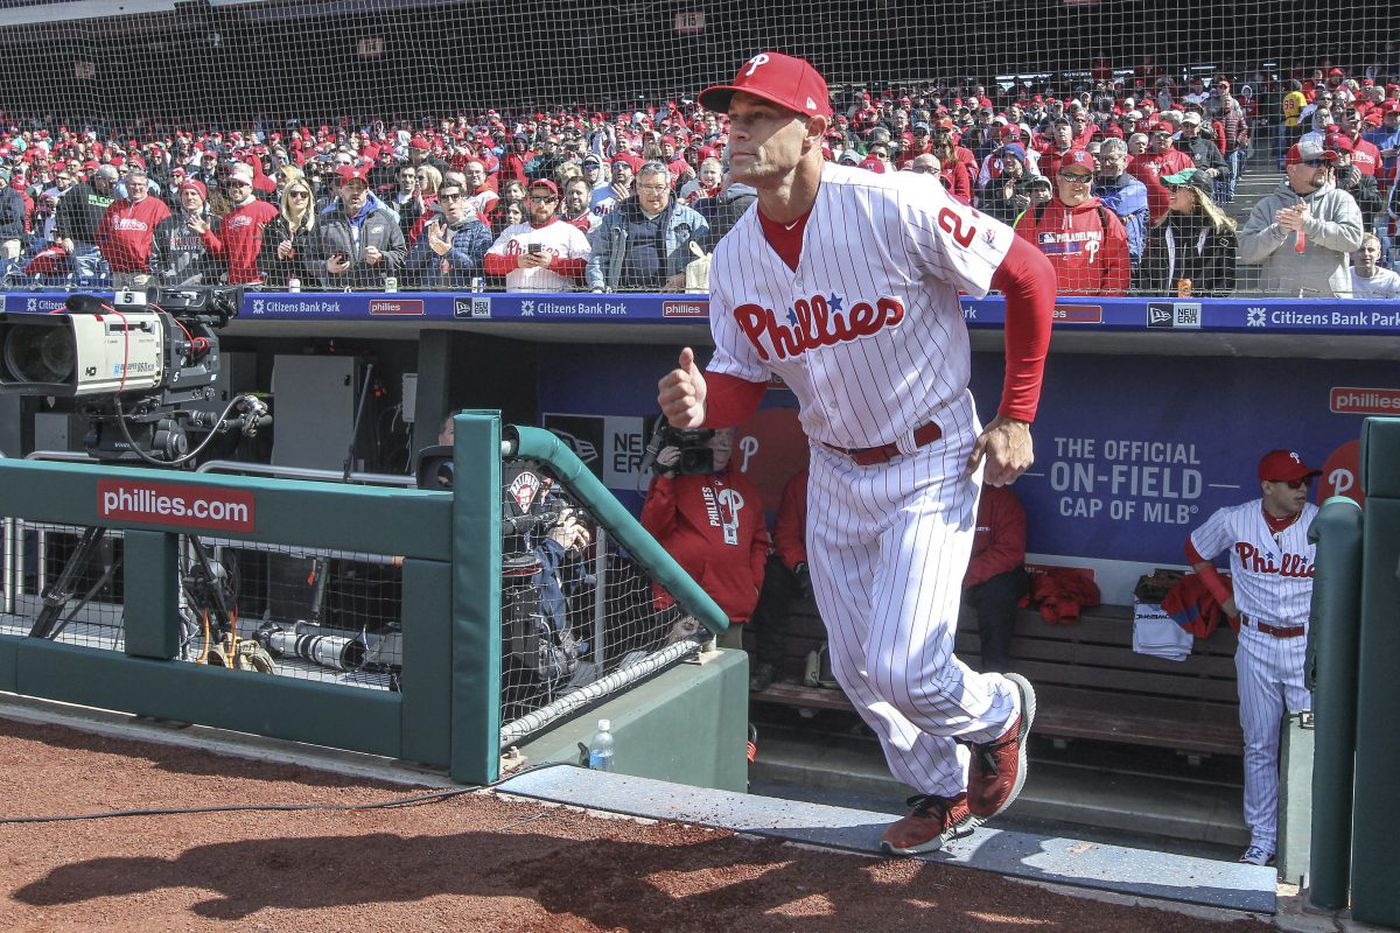 Gabe Kapler's analytically driven shifts start to pay off for Phillies